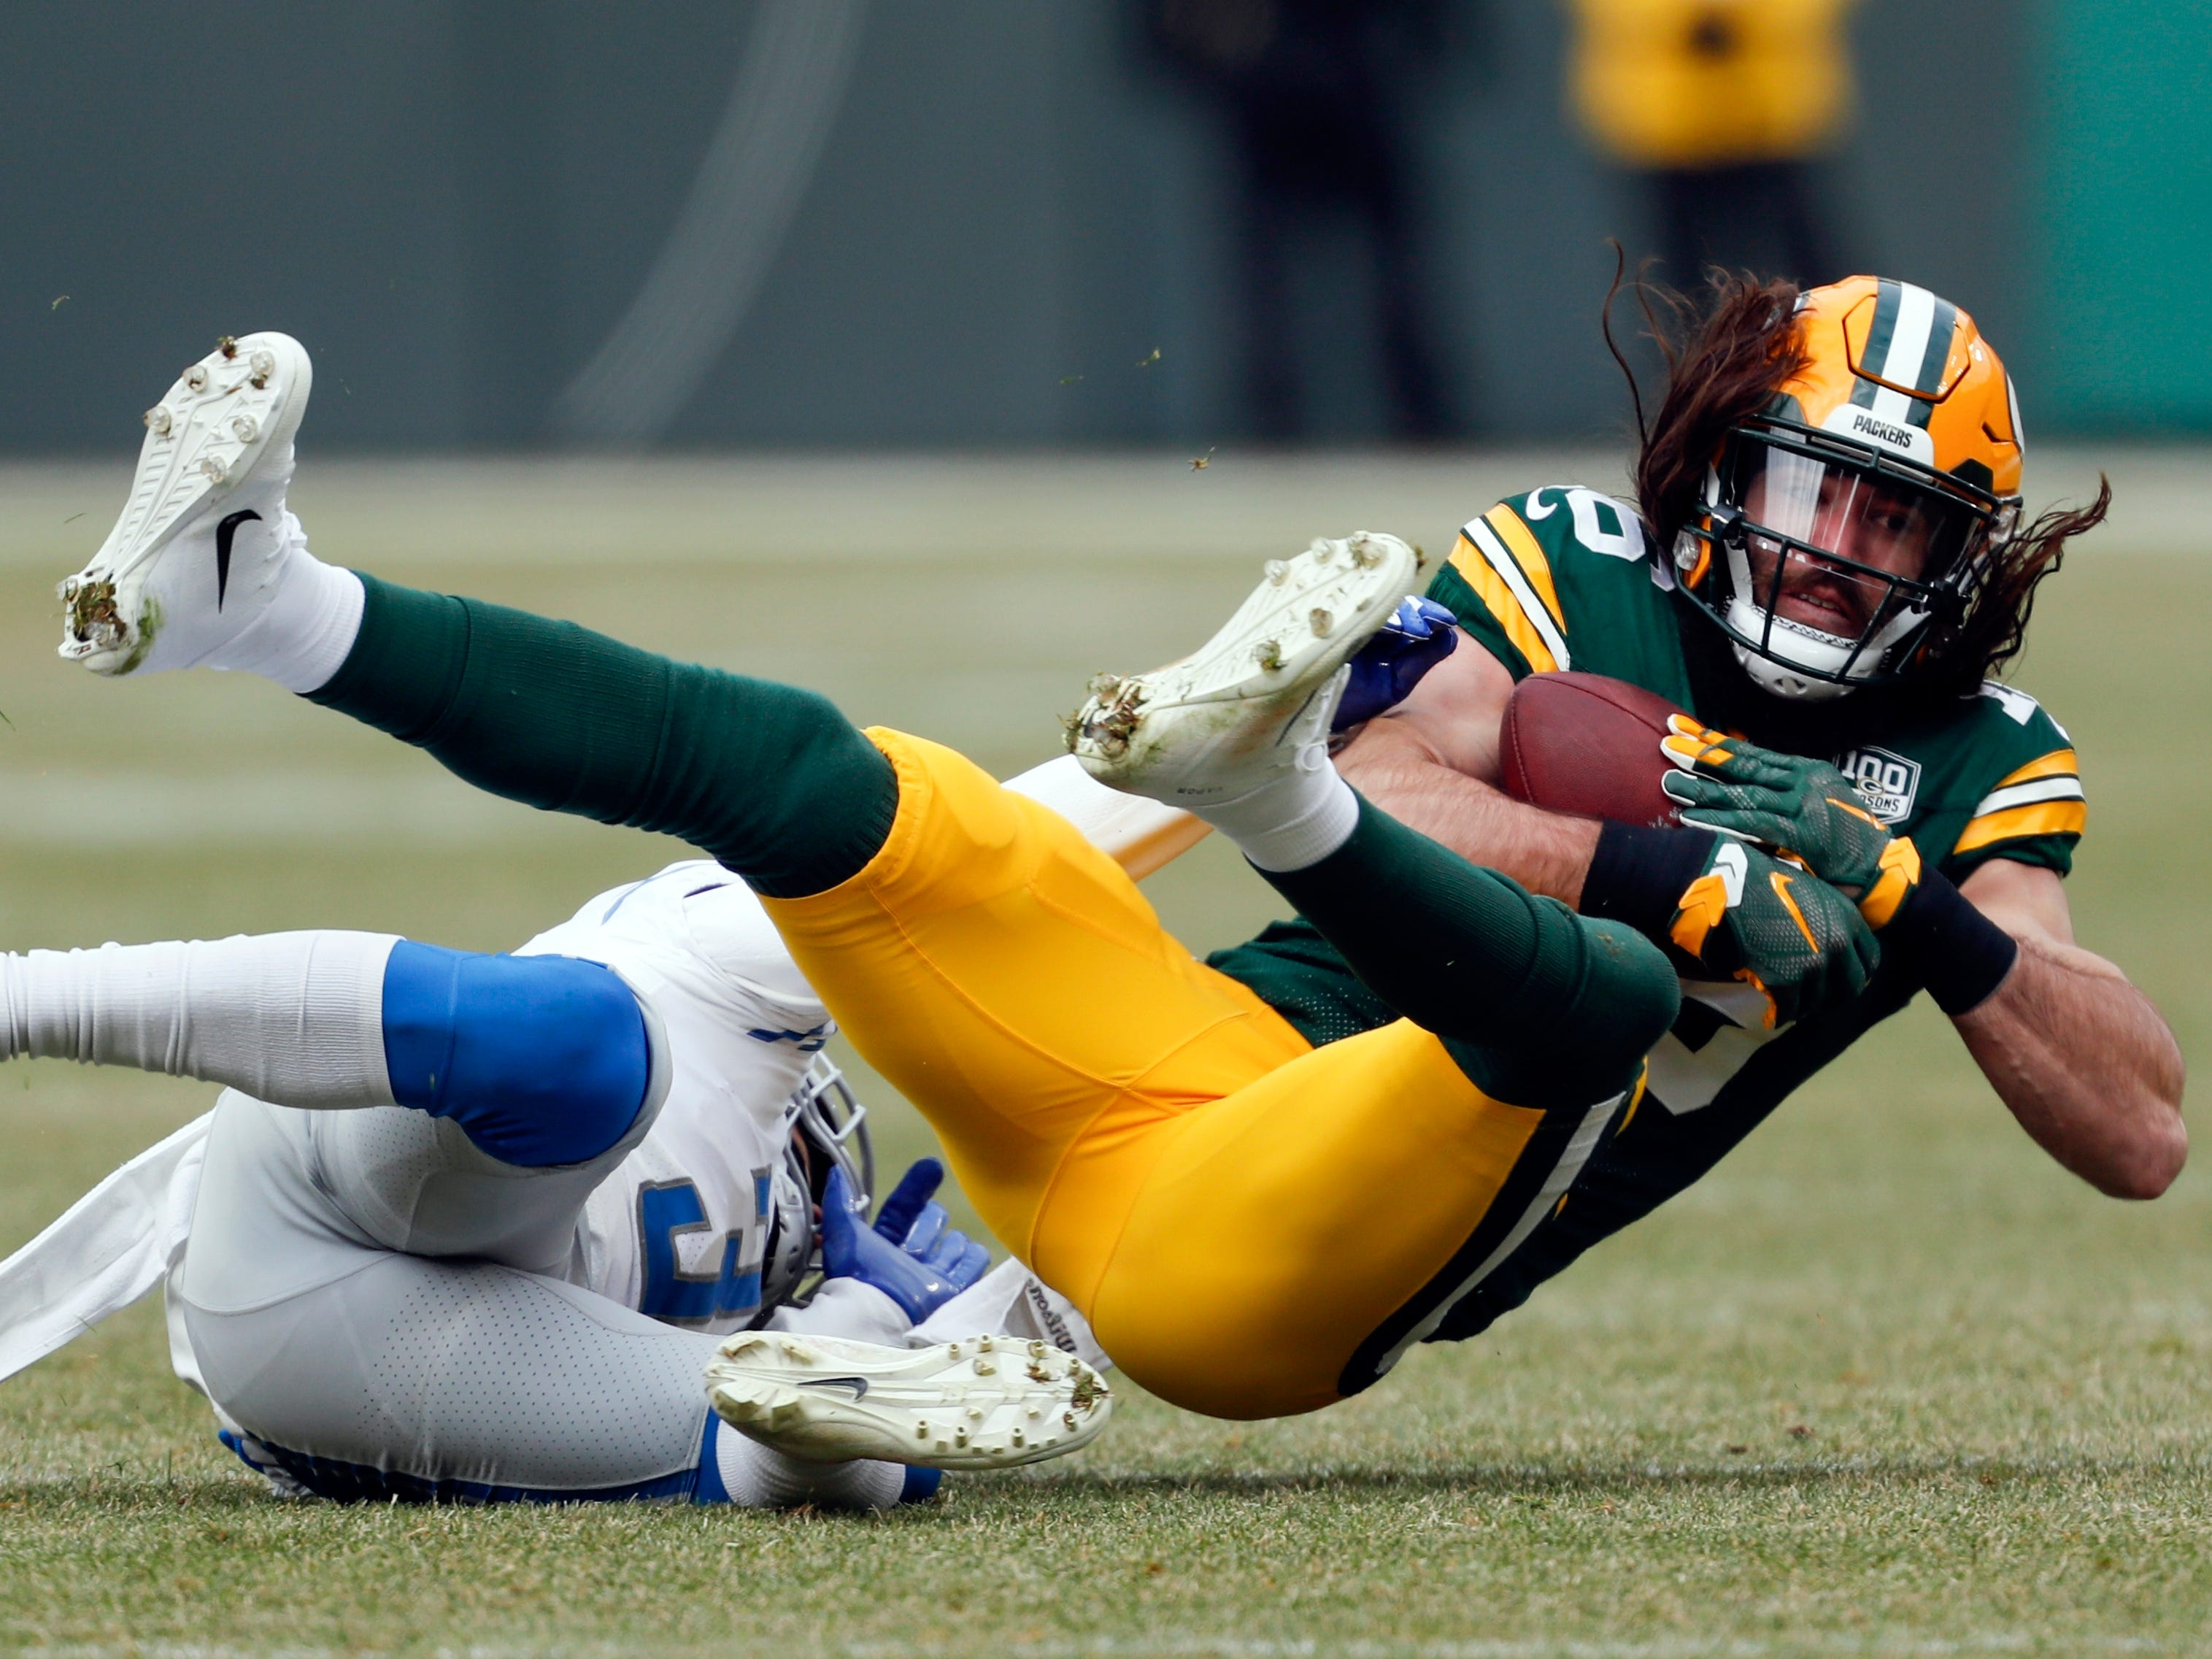 Detroit's Mike Ford tackles Green Bay's Jake Kumerow during the first half.